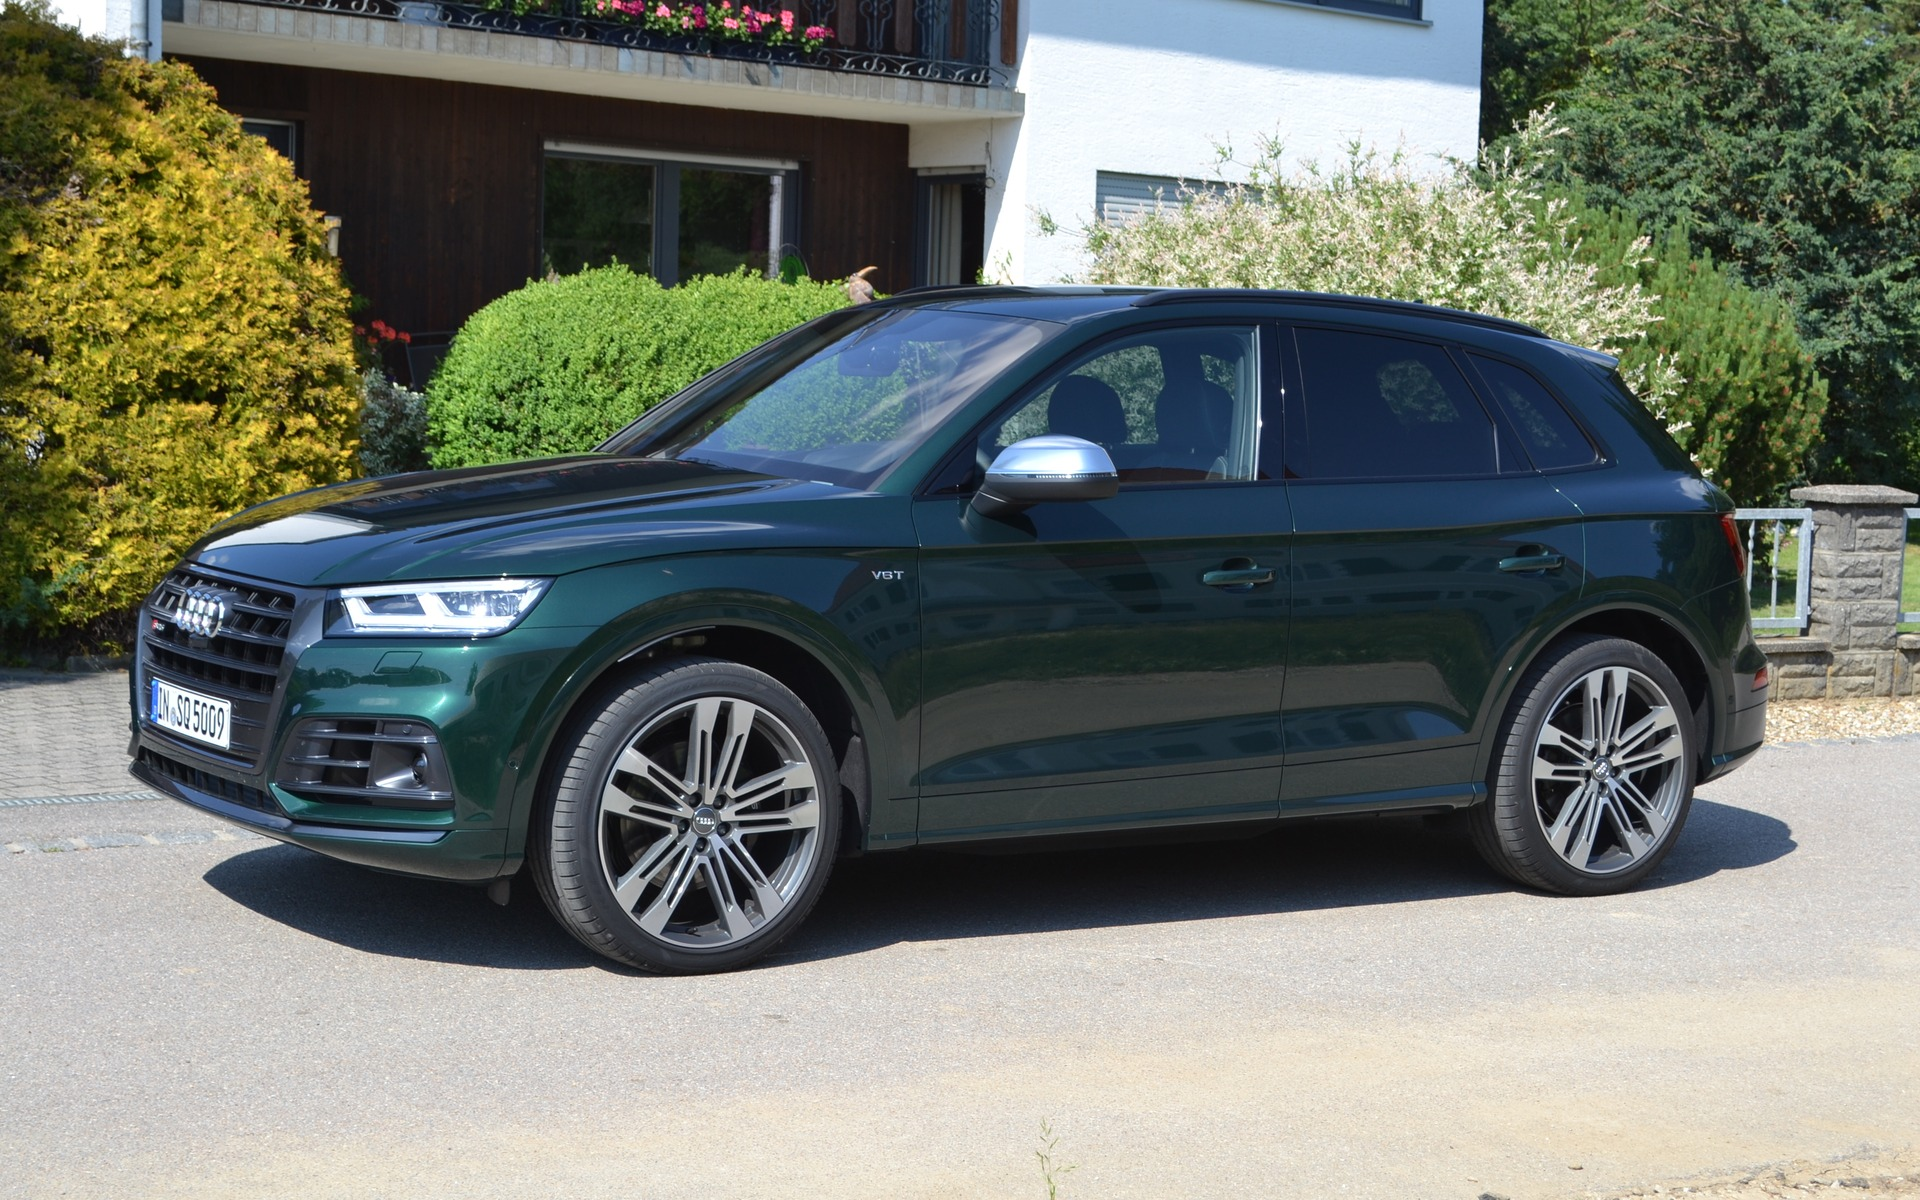 2018 Audi Sq5 Thrilling Within Reason The Car Guide